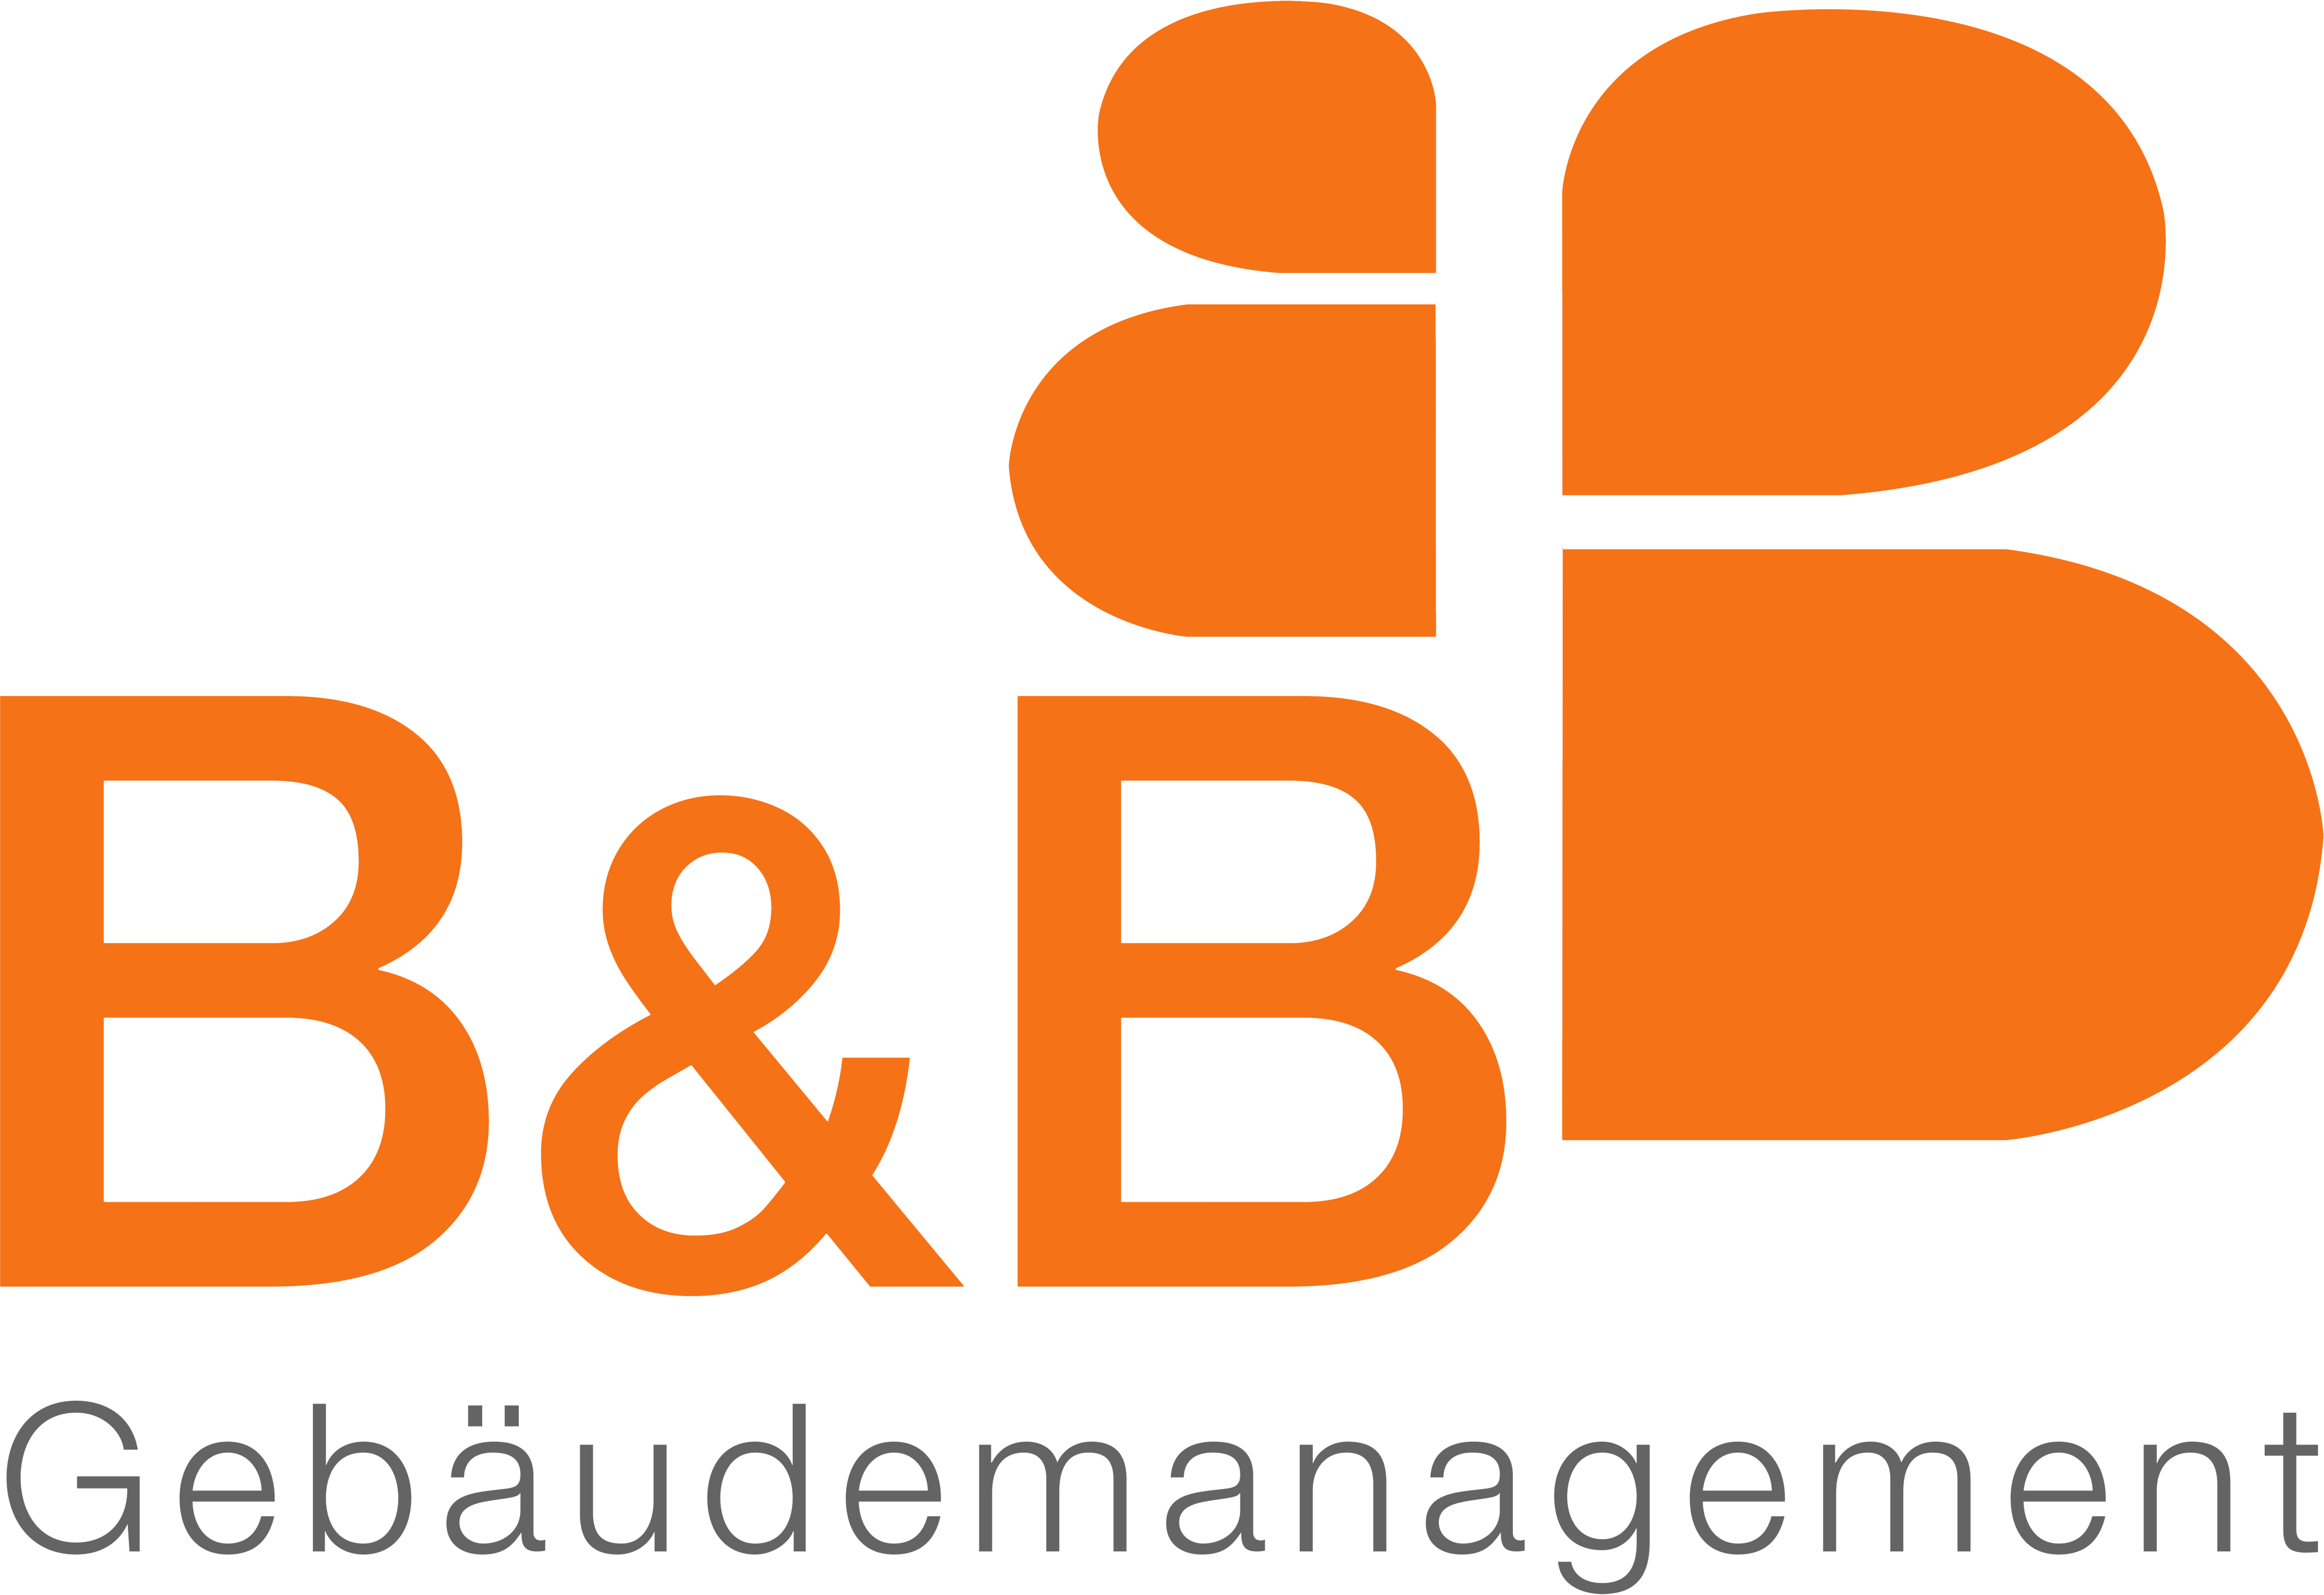 BB-Gebäudemanagement